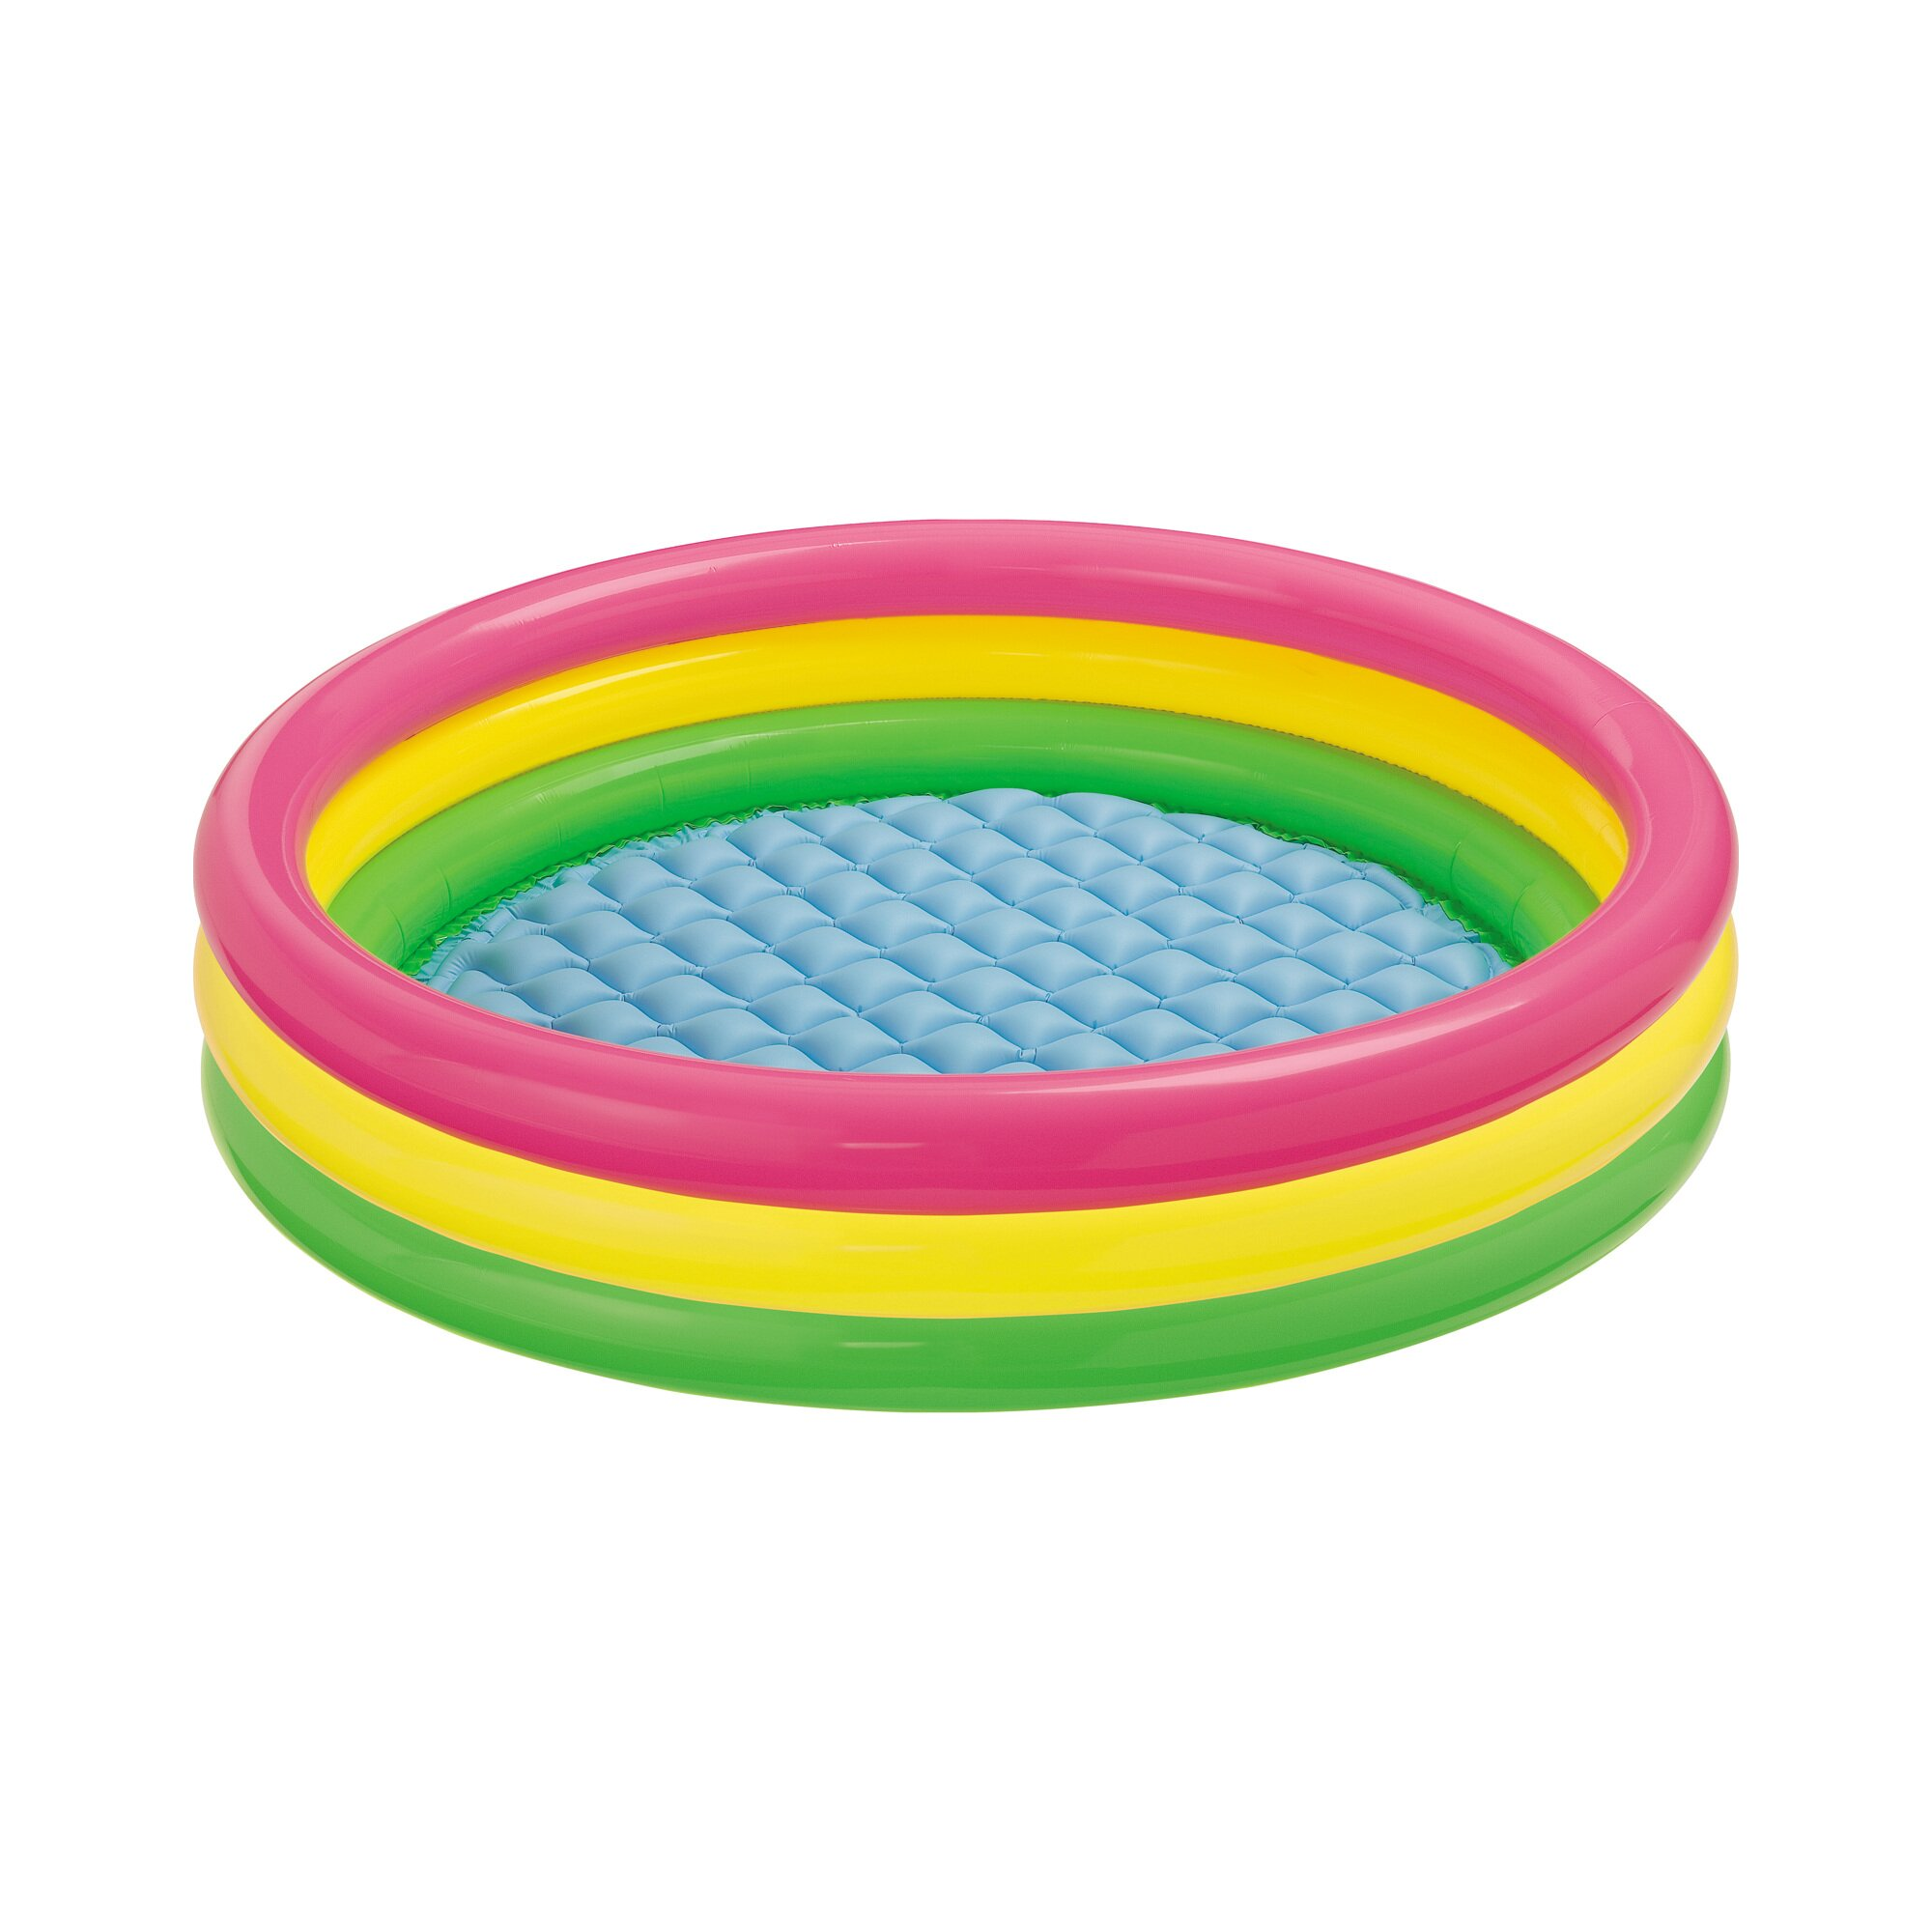 Intex Baby-Pool Sunset Glow mit aufblasbarem Boden